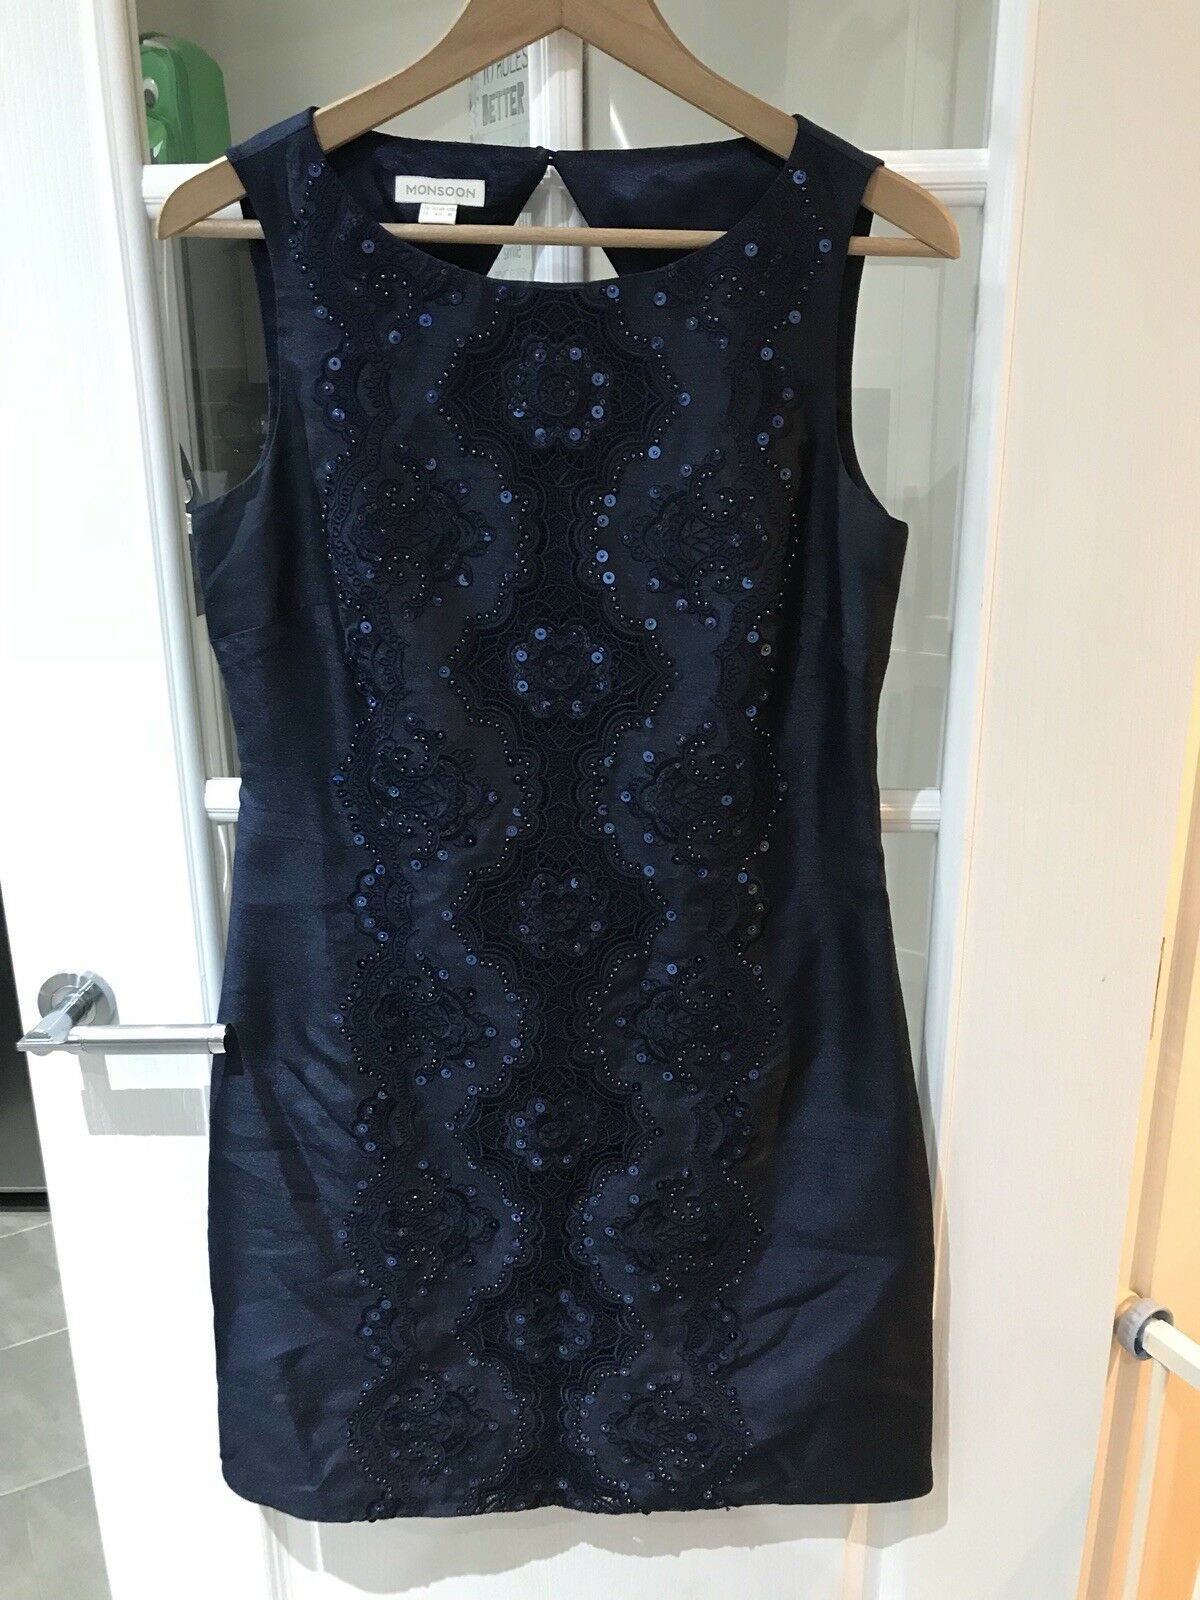 Monsoon Navy Sequin Dress UK Size 12 (should have steamed creases)